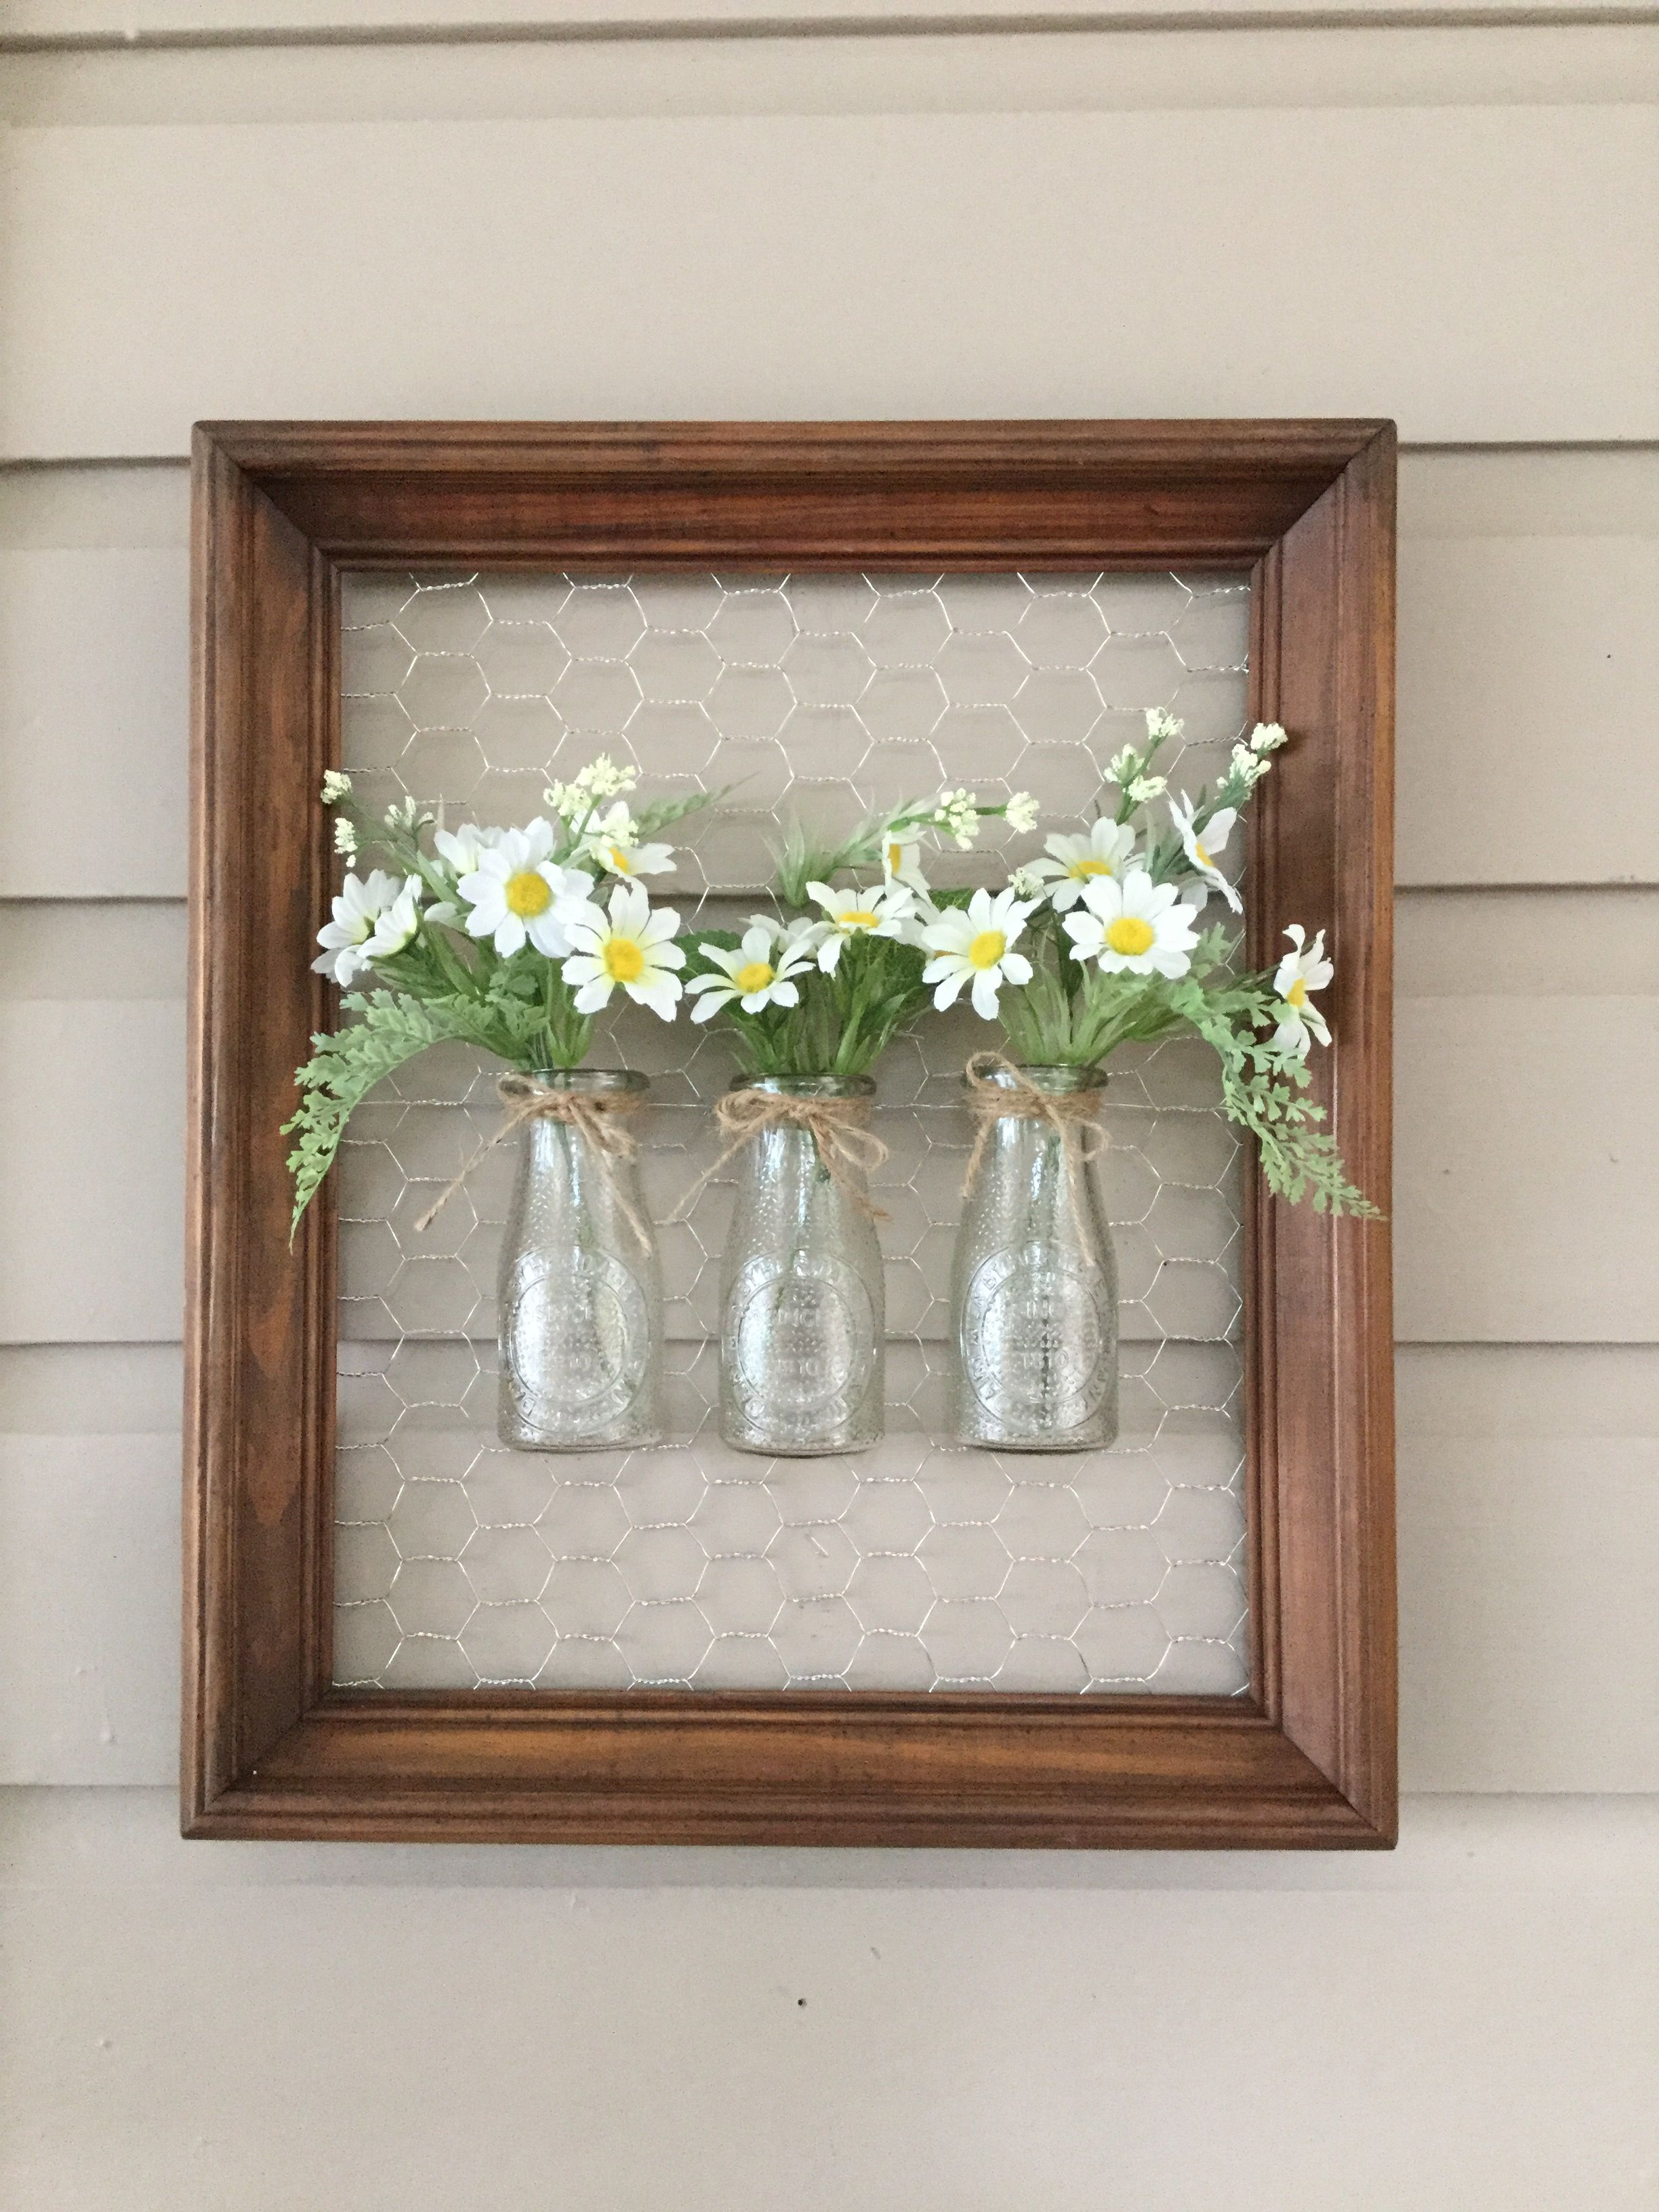 Deco Avec Etagere Murale chicken wire frame with bottles | artisanat avec du grillage